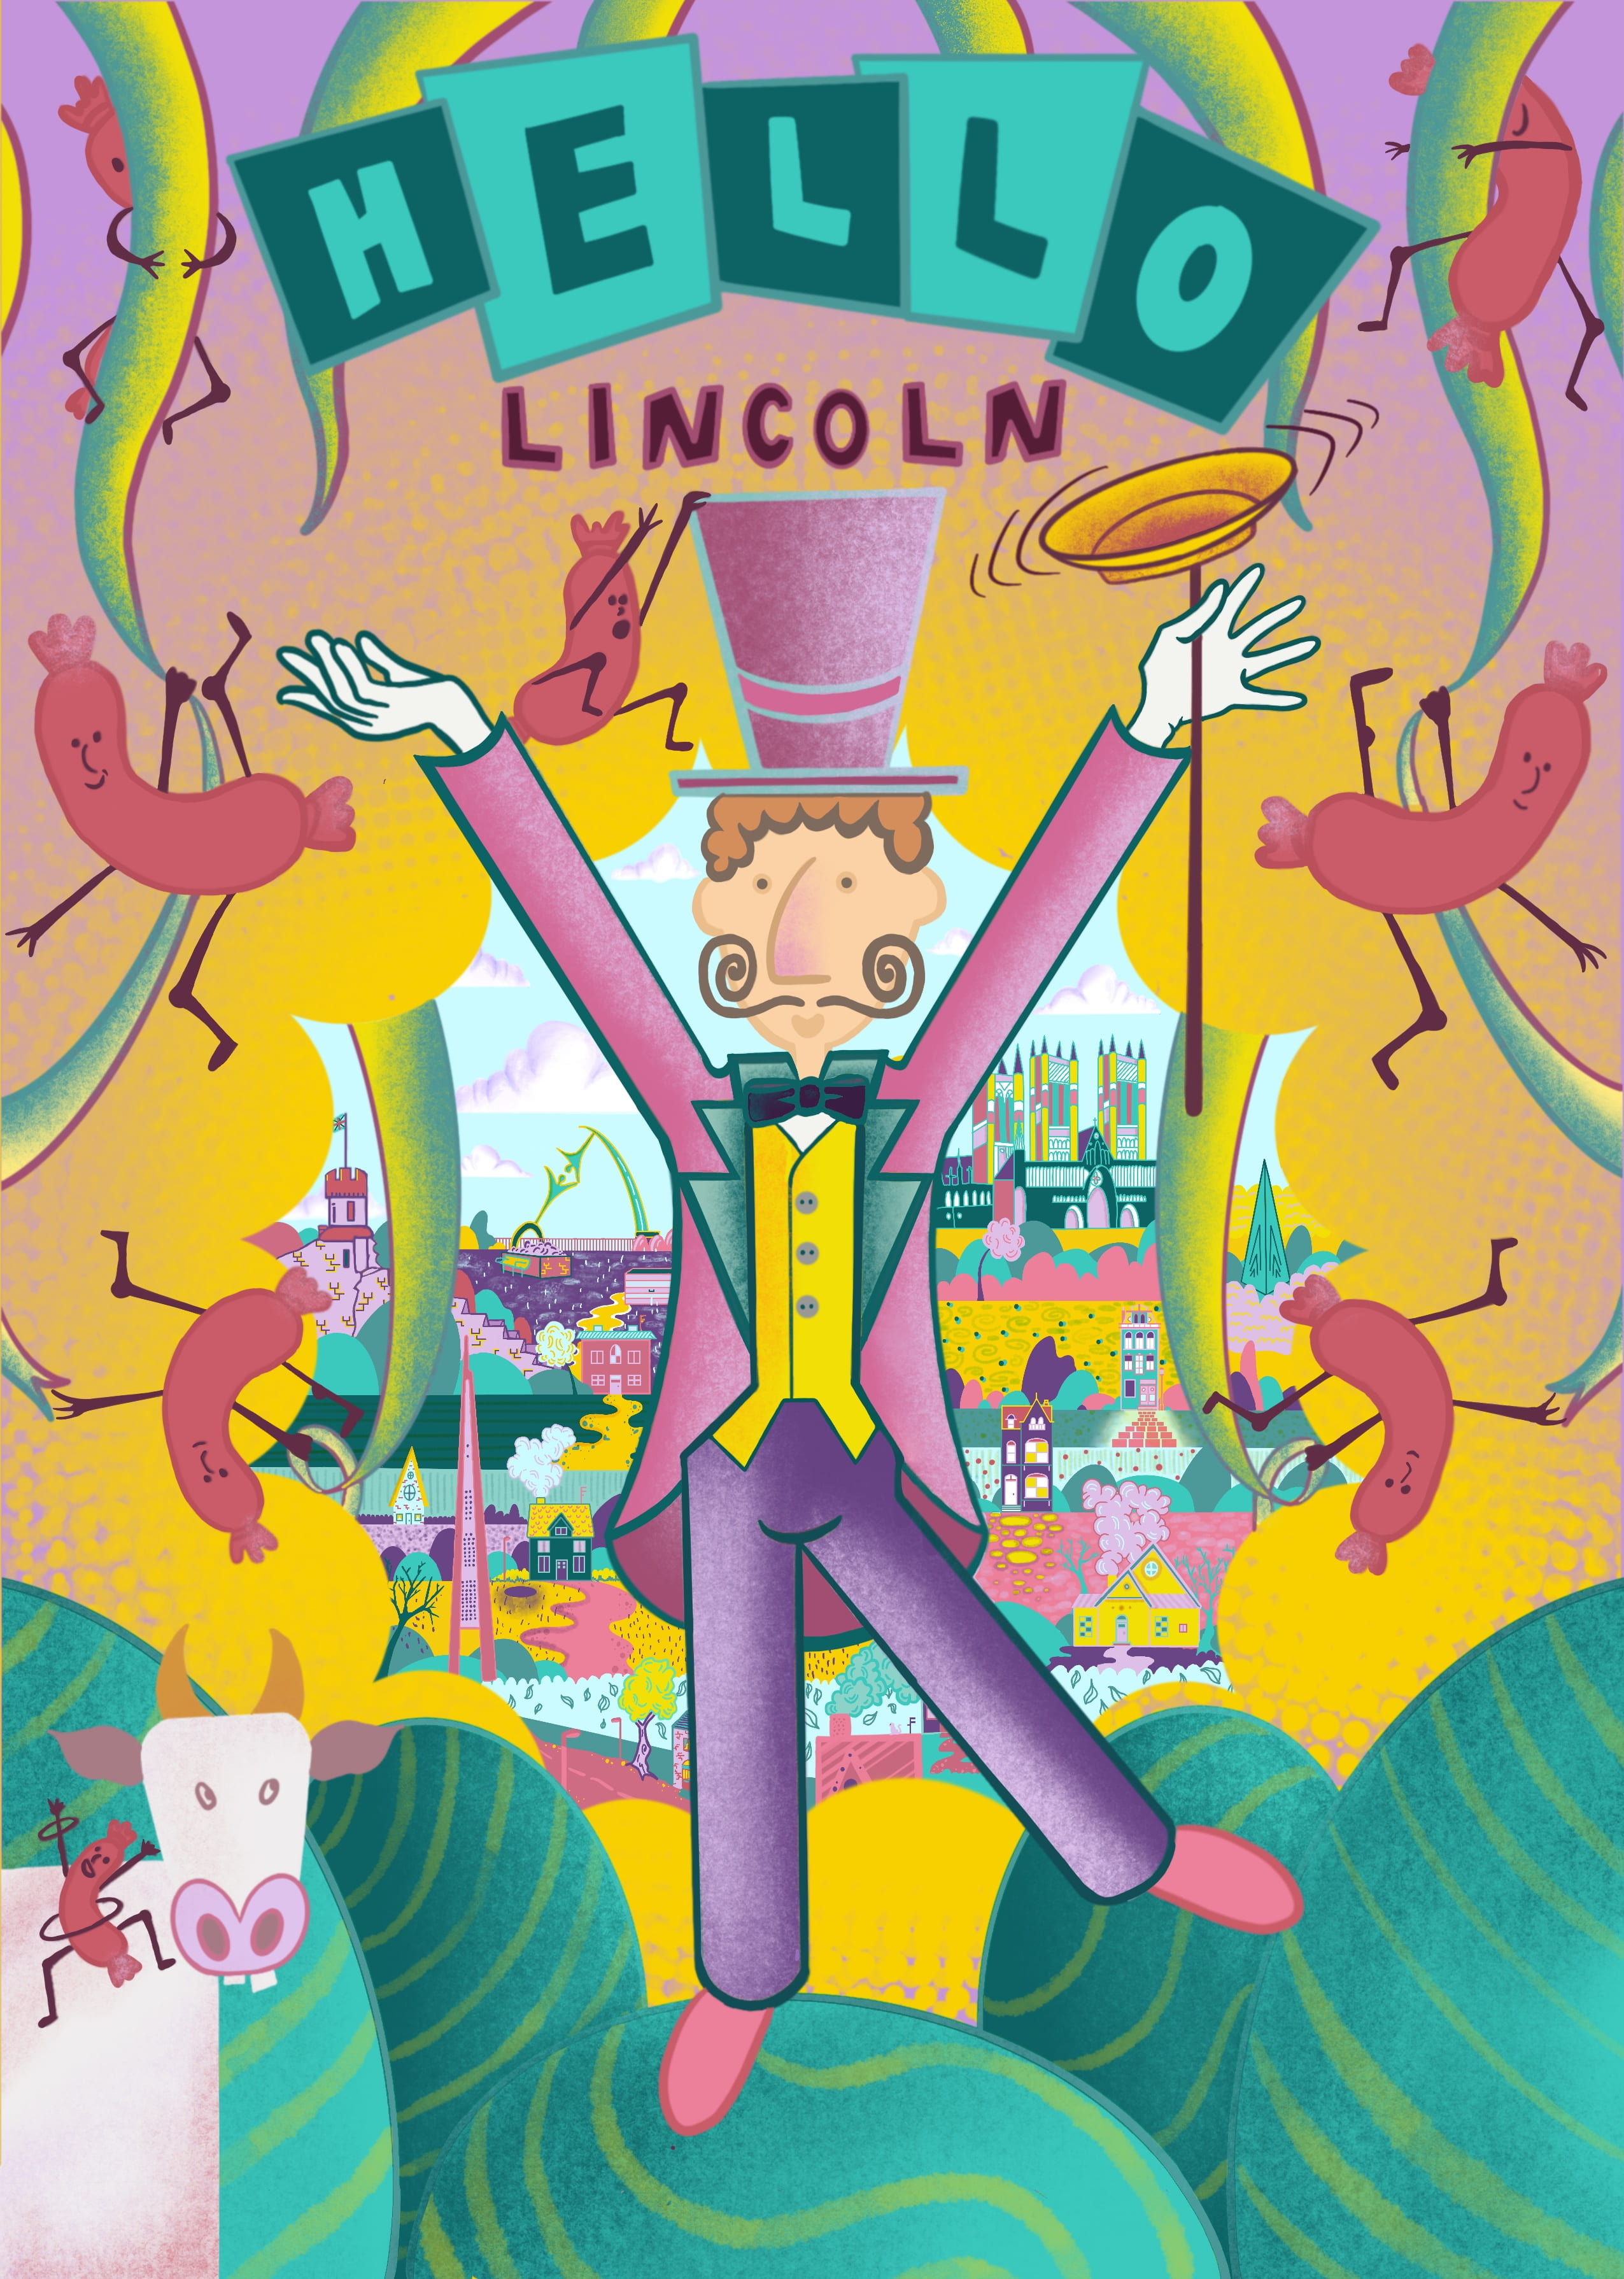 Illustration. Man in pink tail-coat and top-hat spinning a yellow plate on a stick. Title reads: Hello Lincoln.